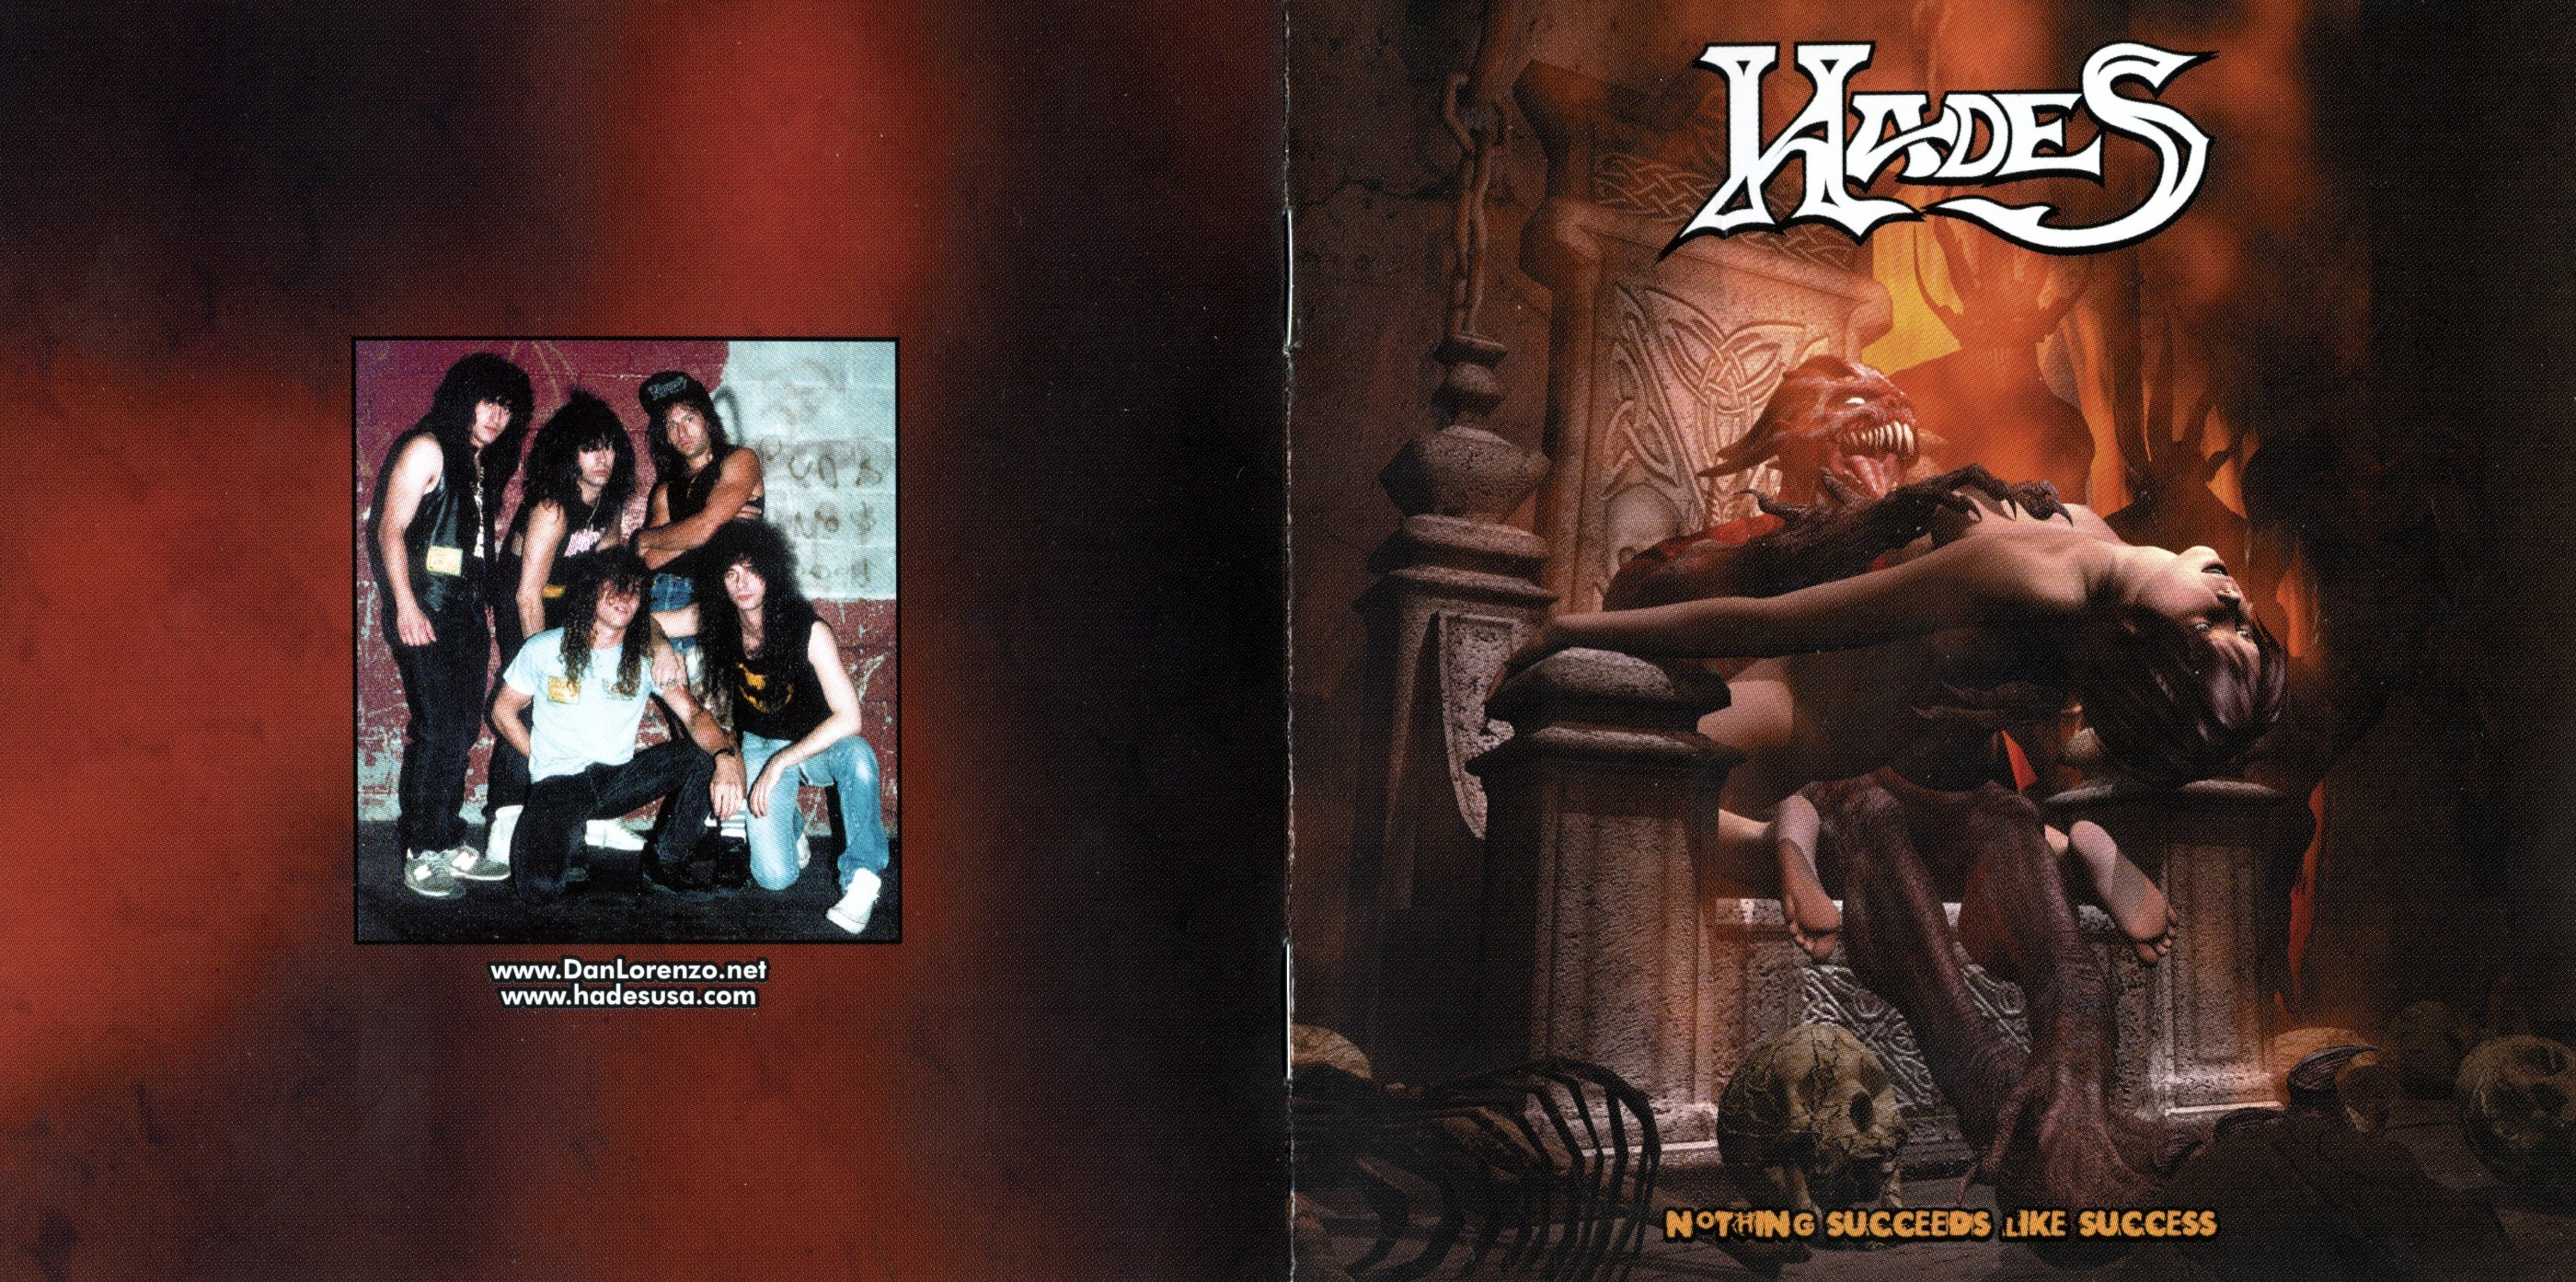 Hades - Nothing Succeeds Like Succees - Booklet (1-4)